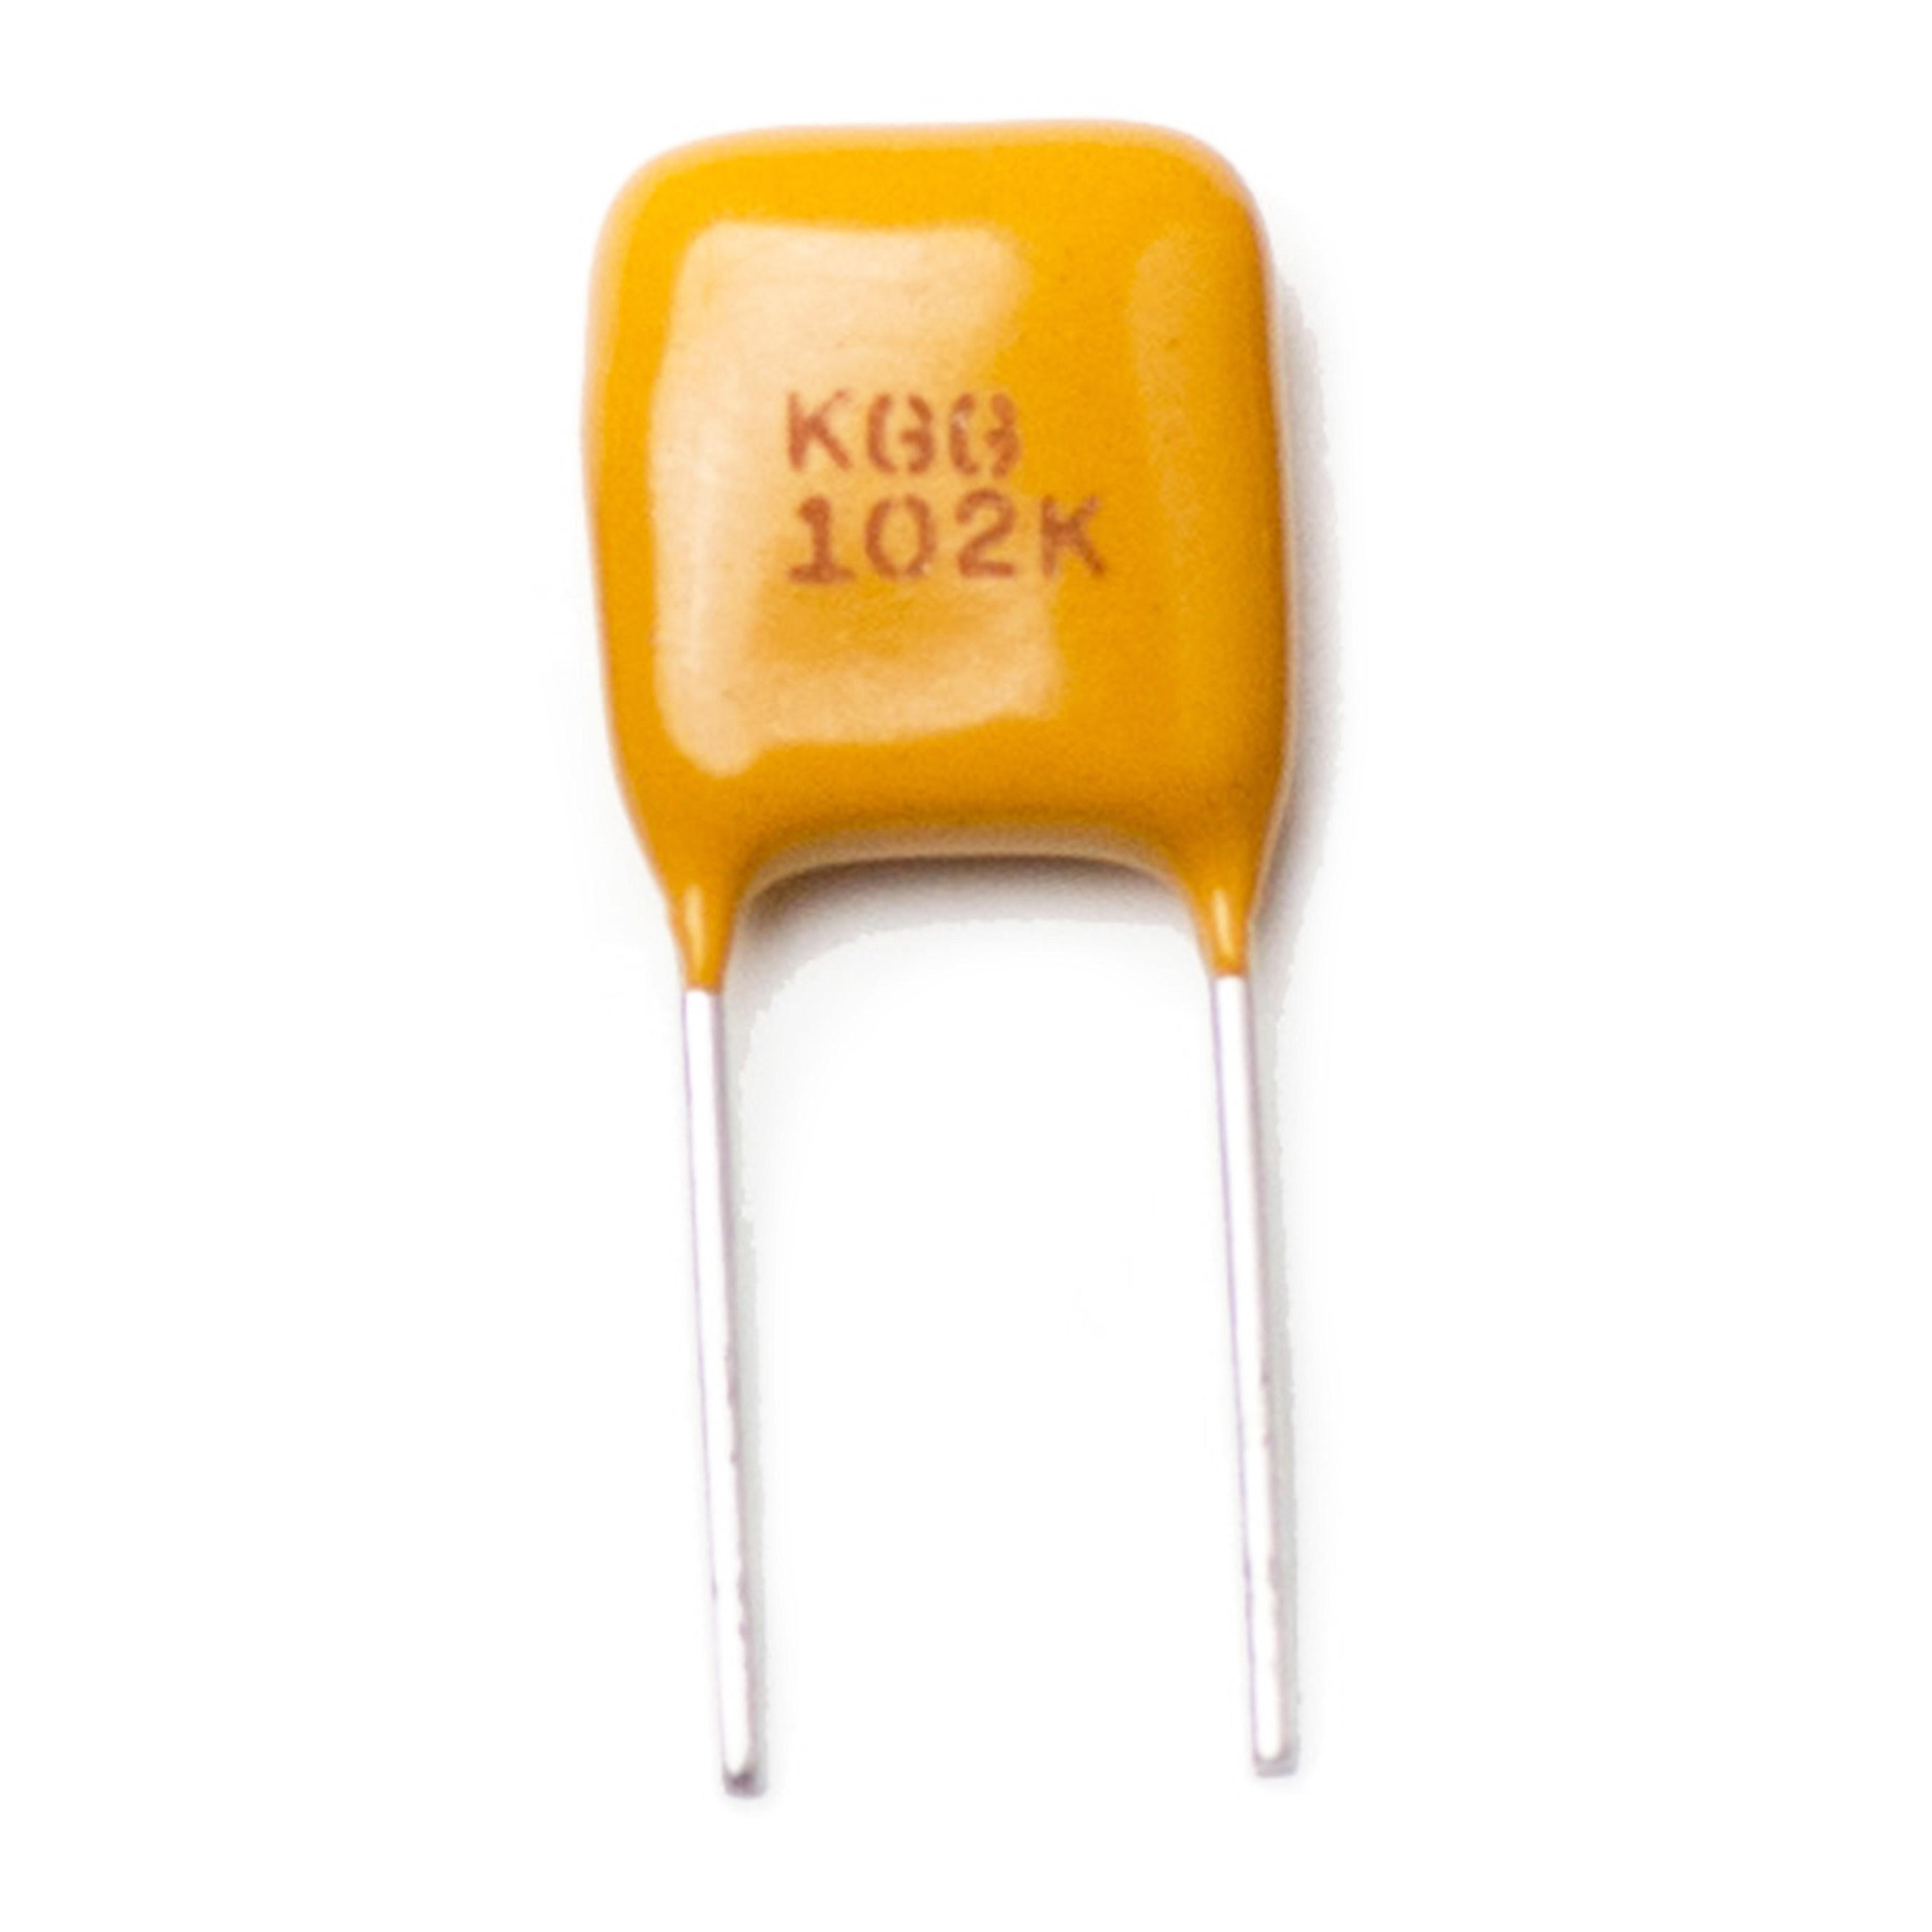 Take Your Circuit to New Heights with KEMET High Voltage Goldmax Radial Leaded MLCCs